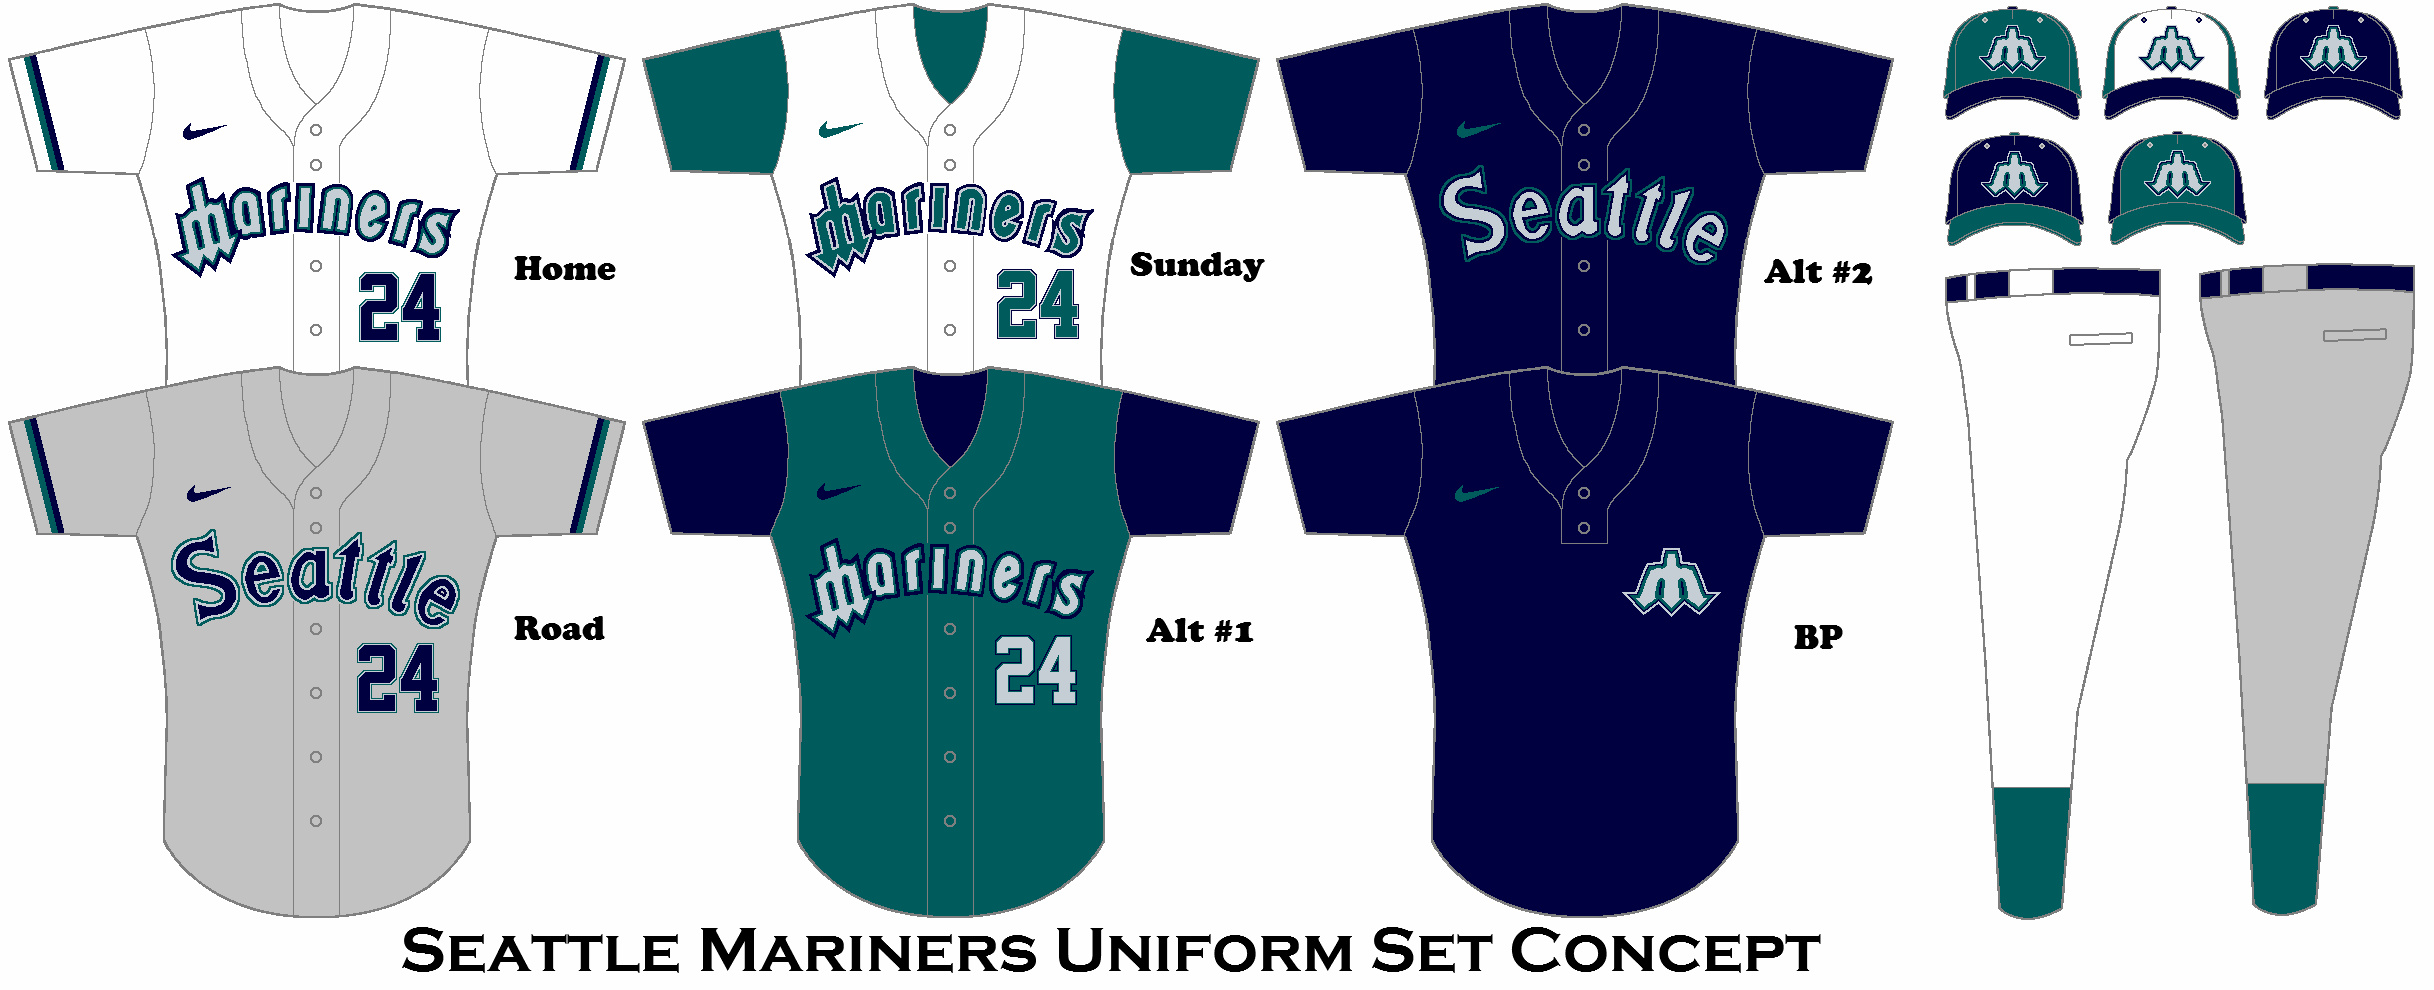 Seattle Mariners Uniform Set Concept Seattle Mariners Mlb Chicago Cubs Mlb Uniforms